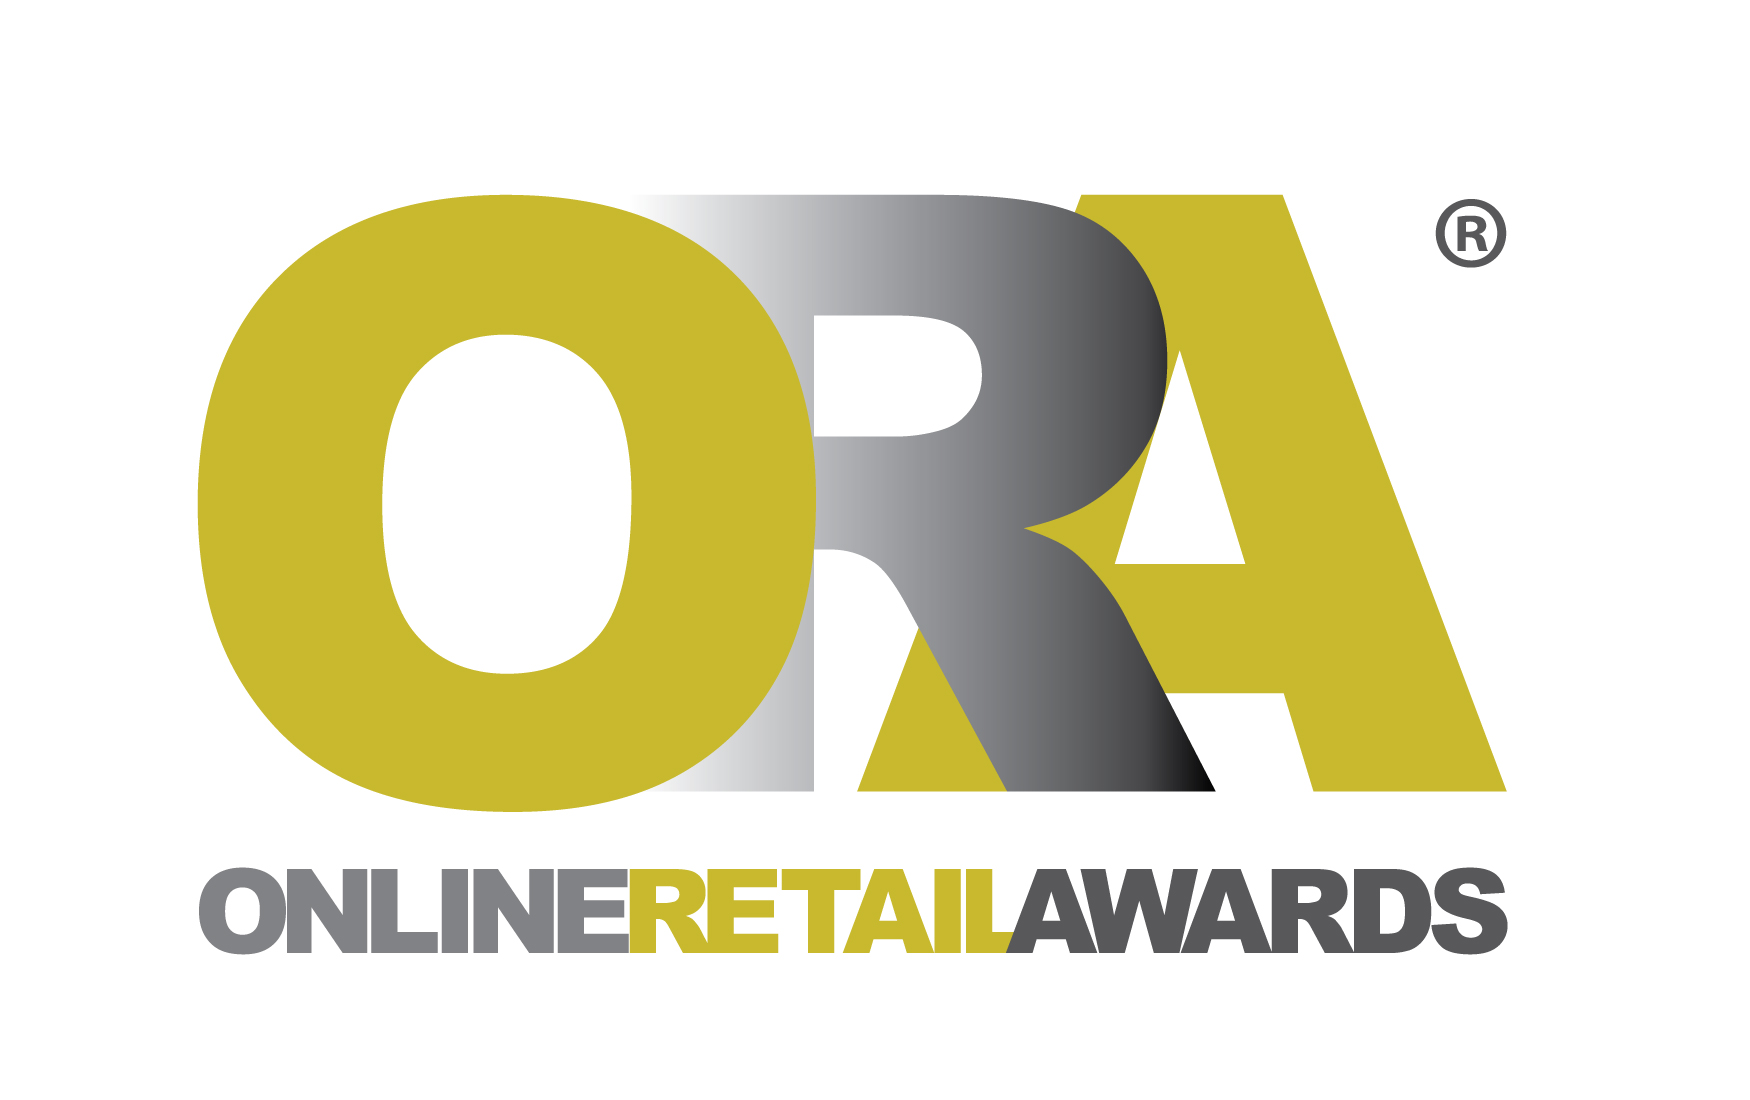 Online Retail Awards winner